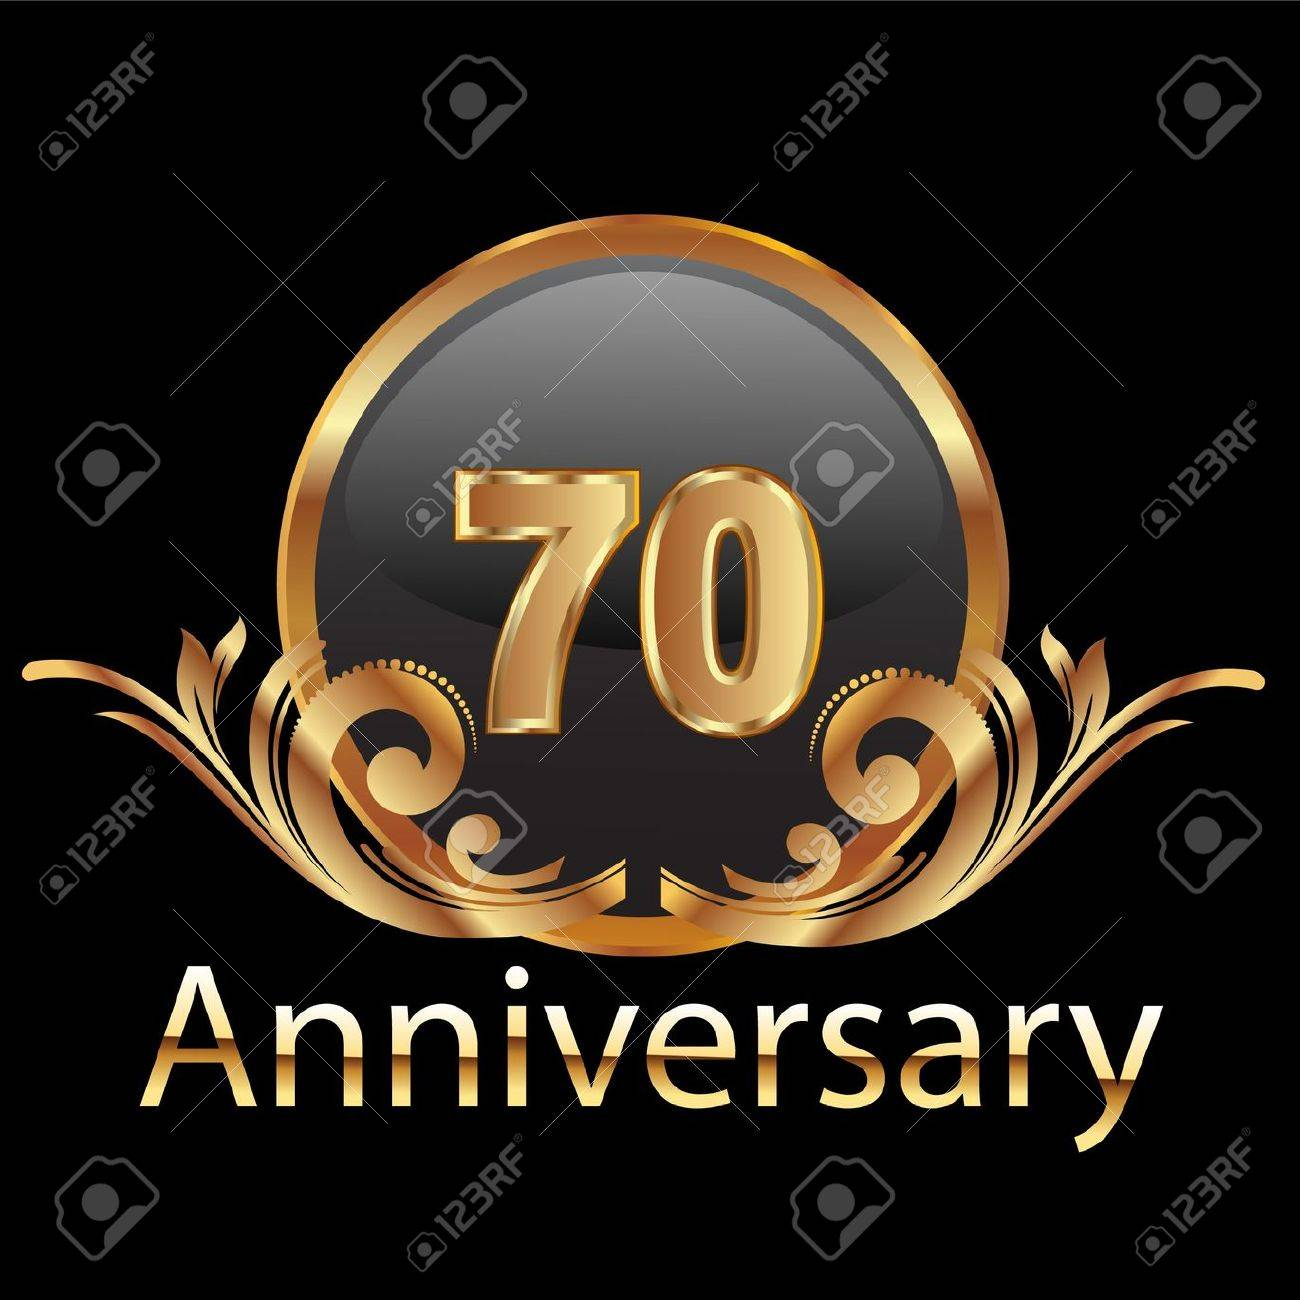 70 anniversary happy birthday Stock Vector - 12379711